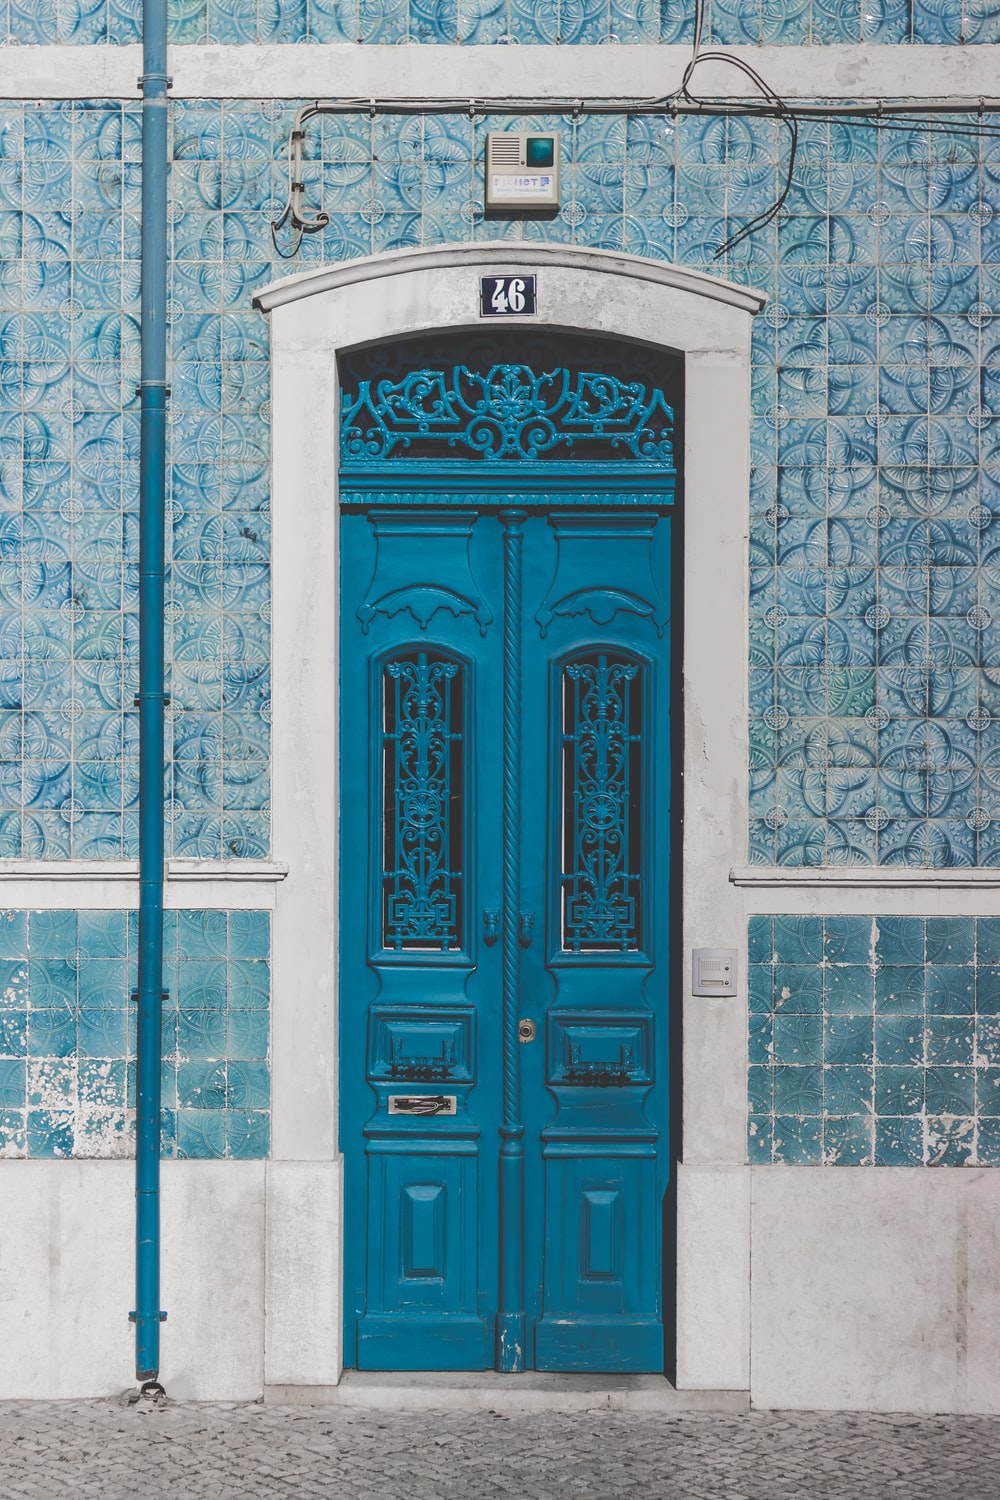 blue wooden door closed with 46 sign